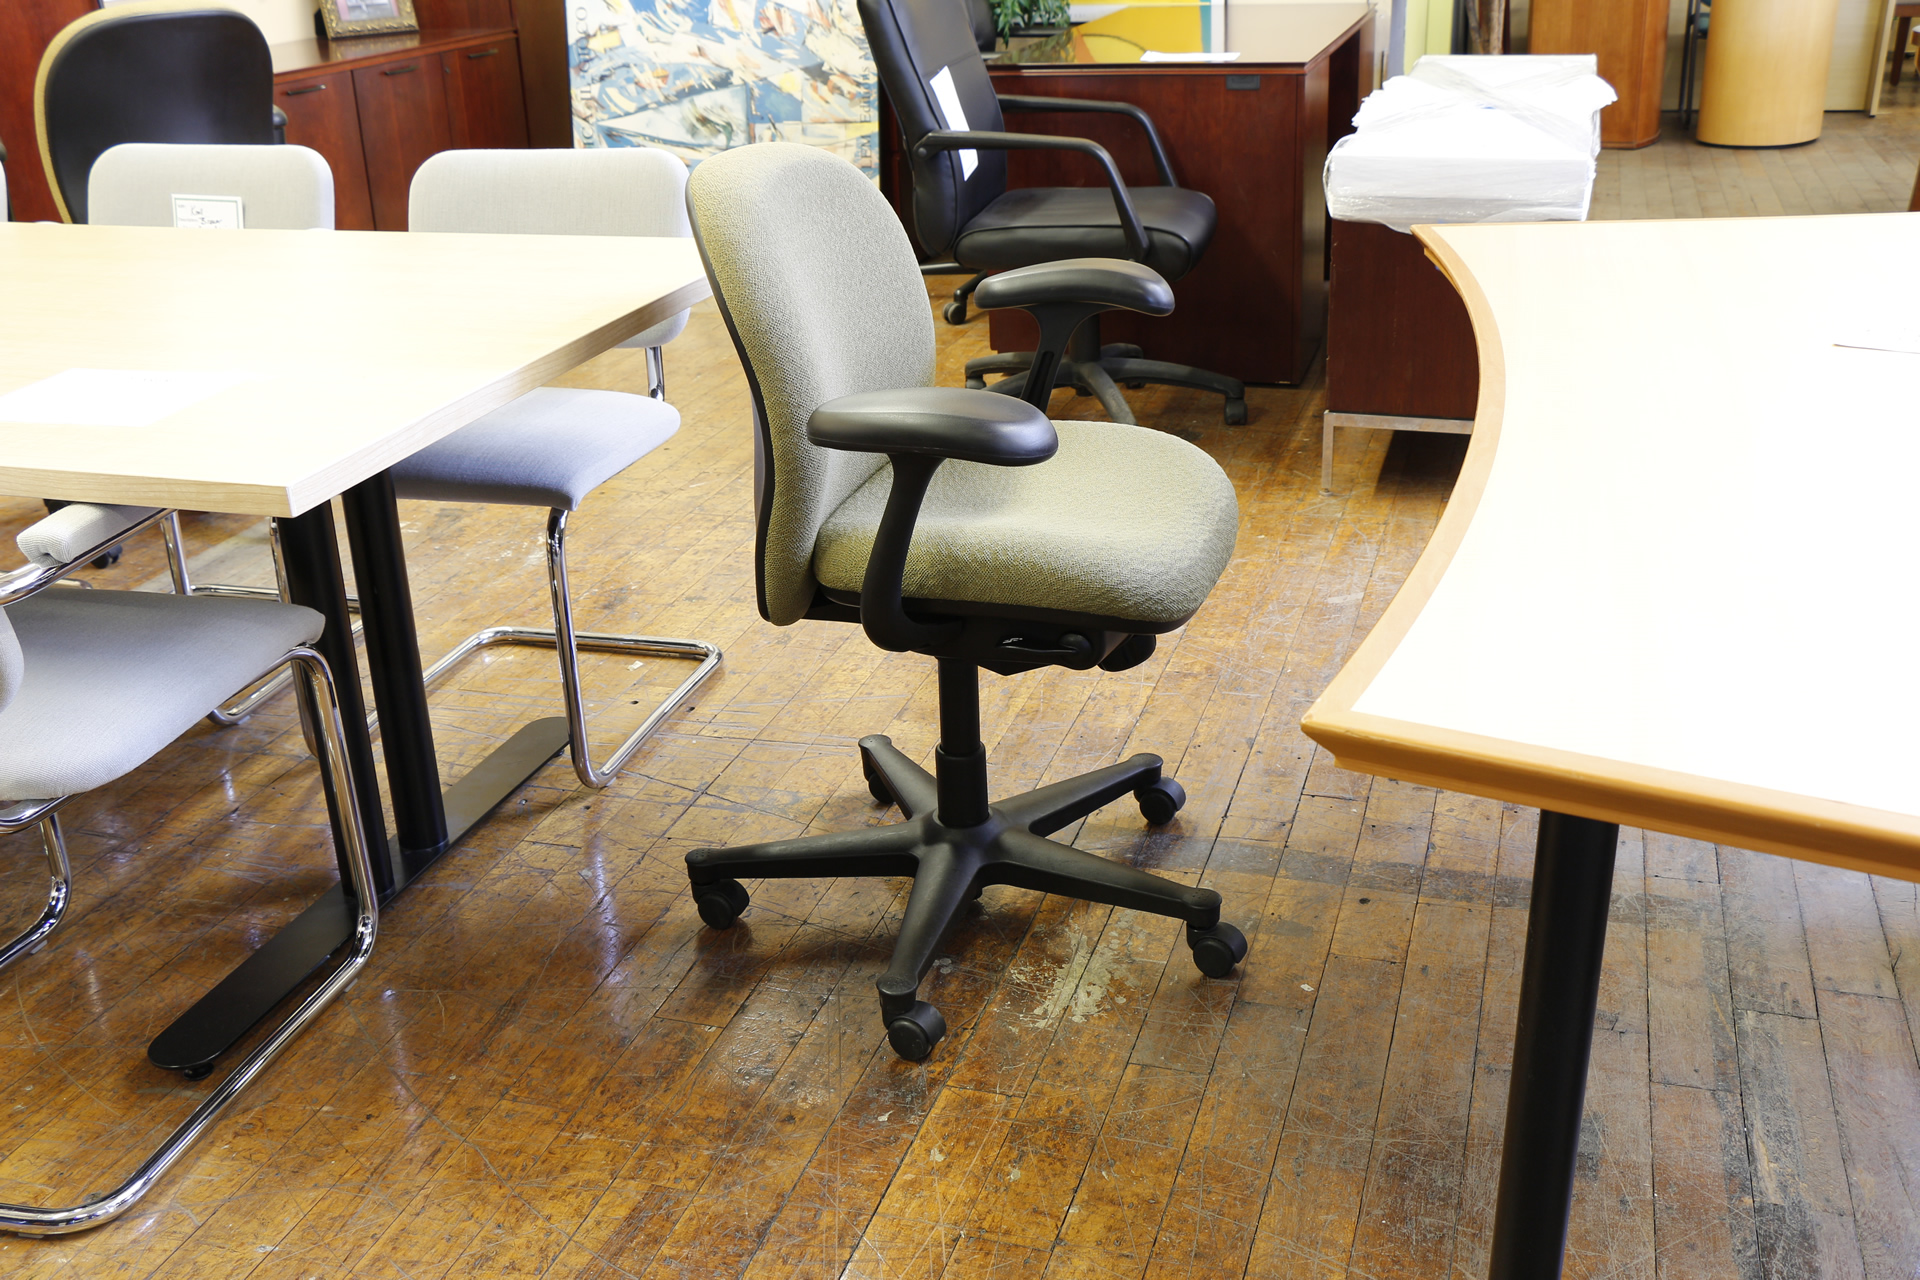 peartreeofficefurniture_peartreeofficefurniture_mg_4112.jpg